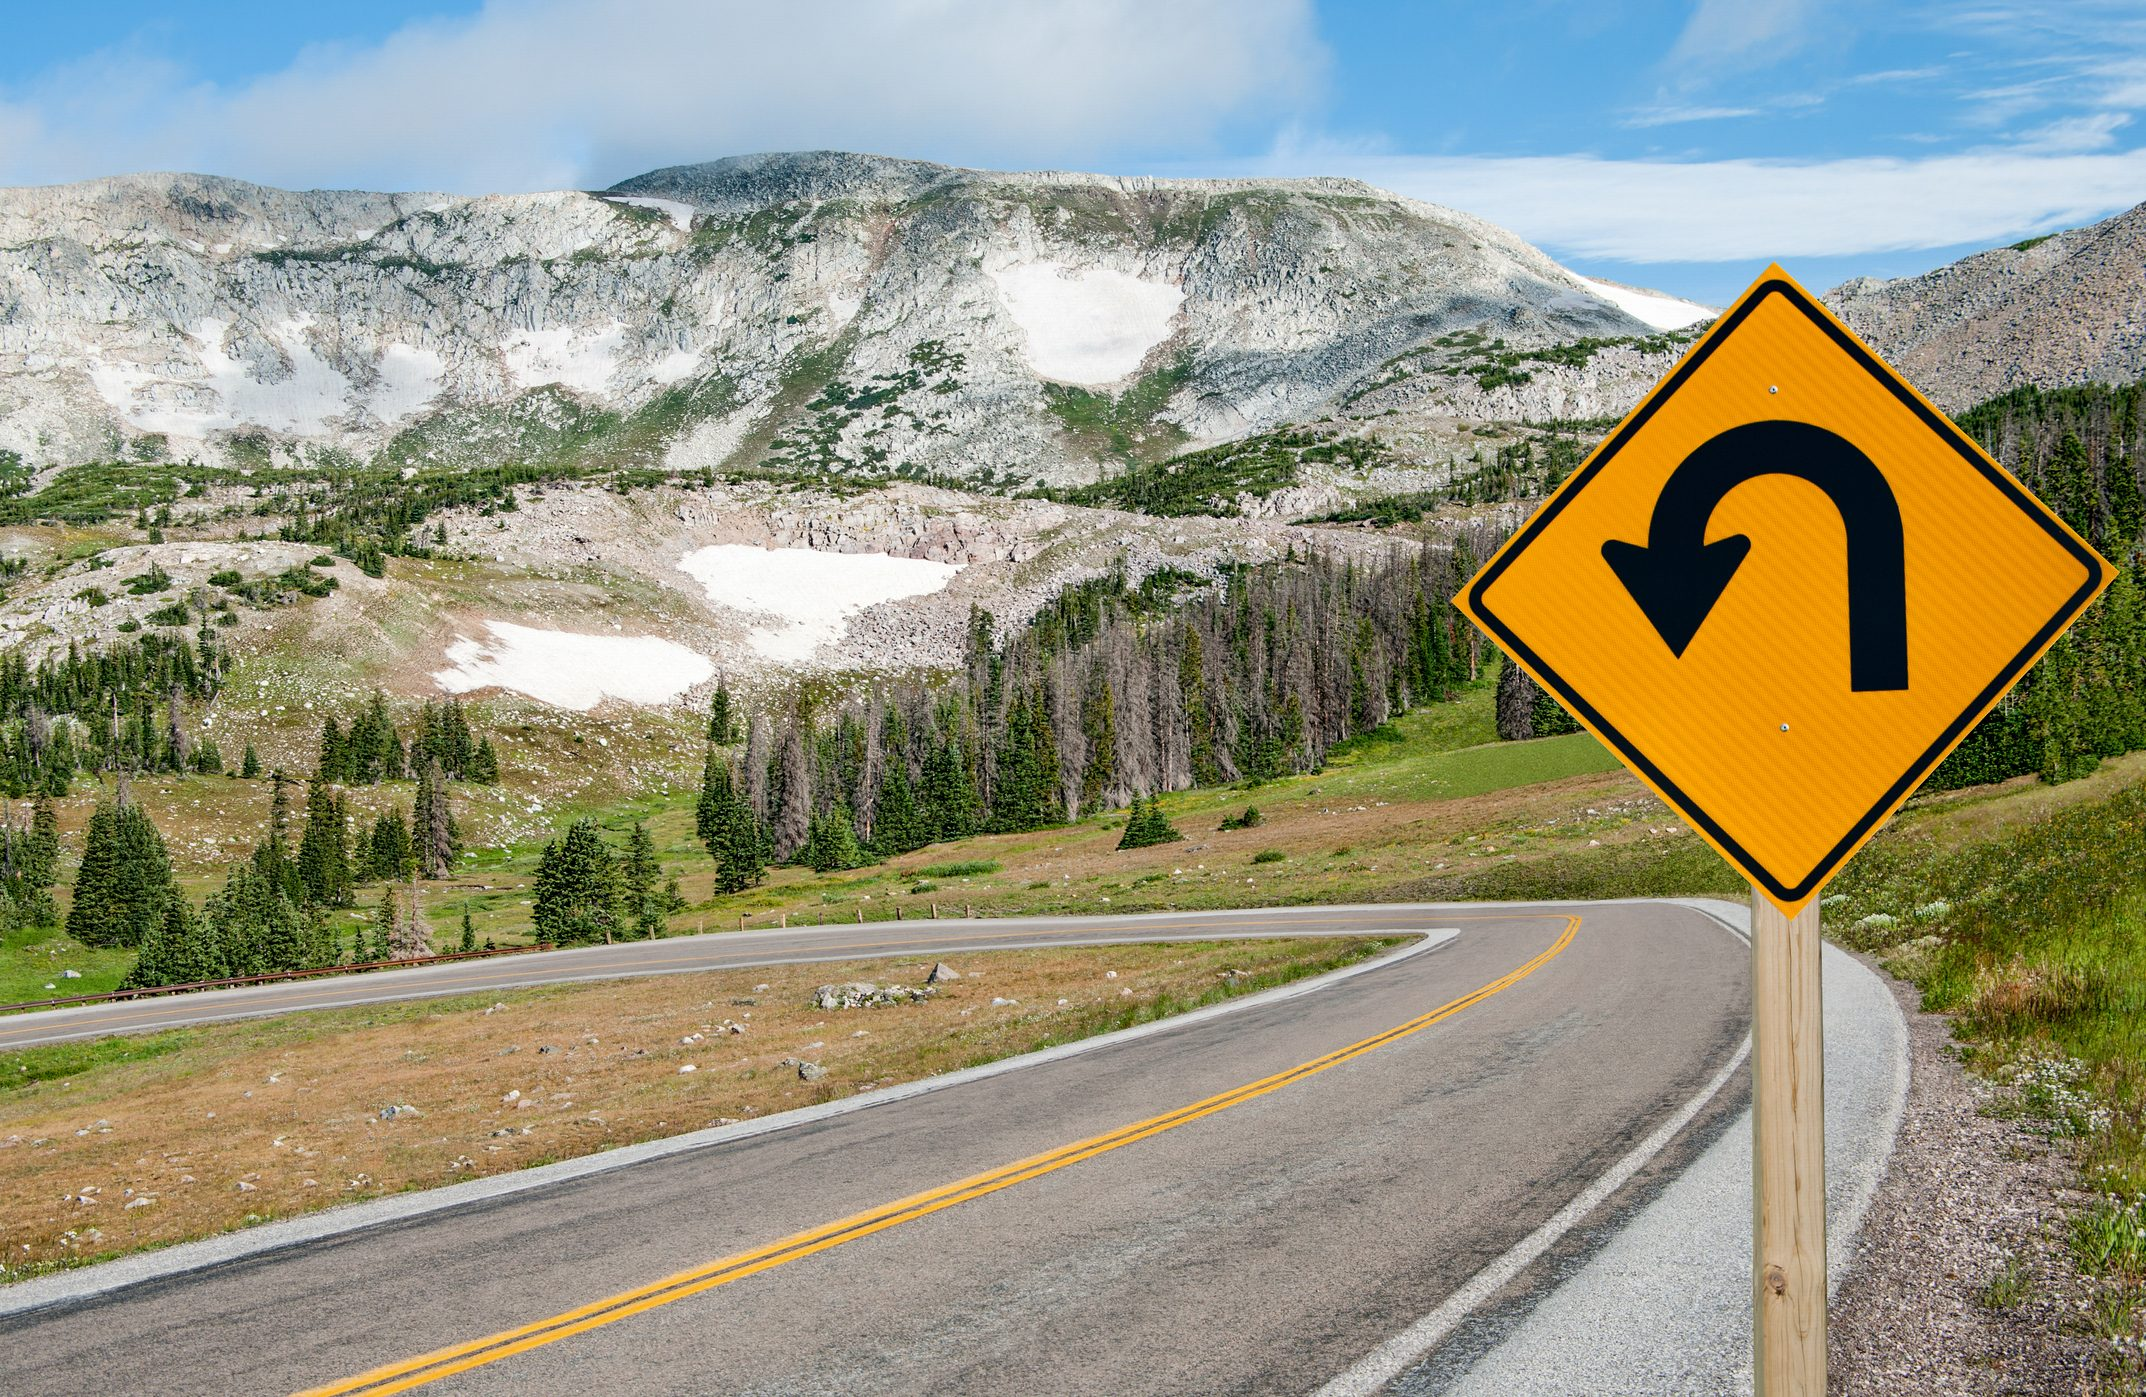 A sign warns motorists of a sharp bend ahead on the Snowy Range Scenic Byway in Wyoming.